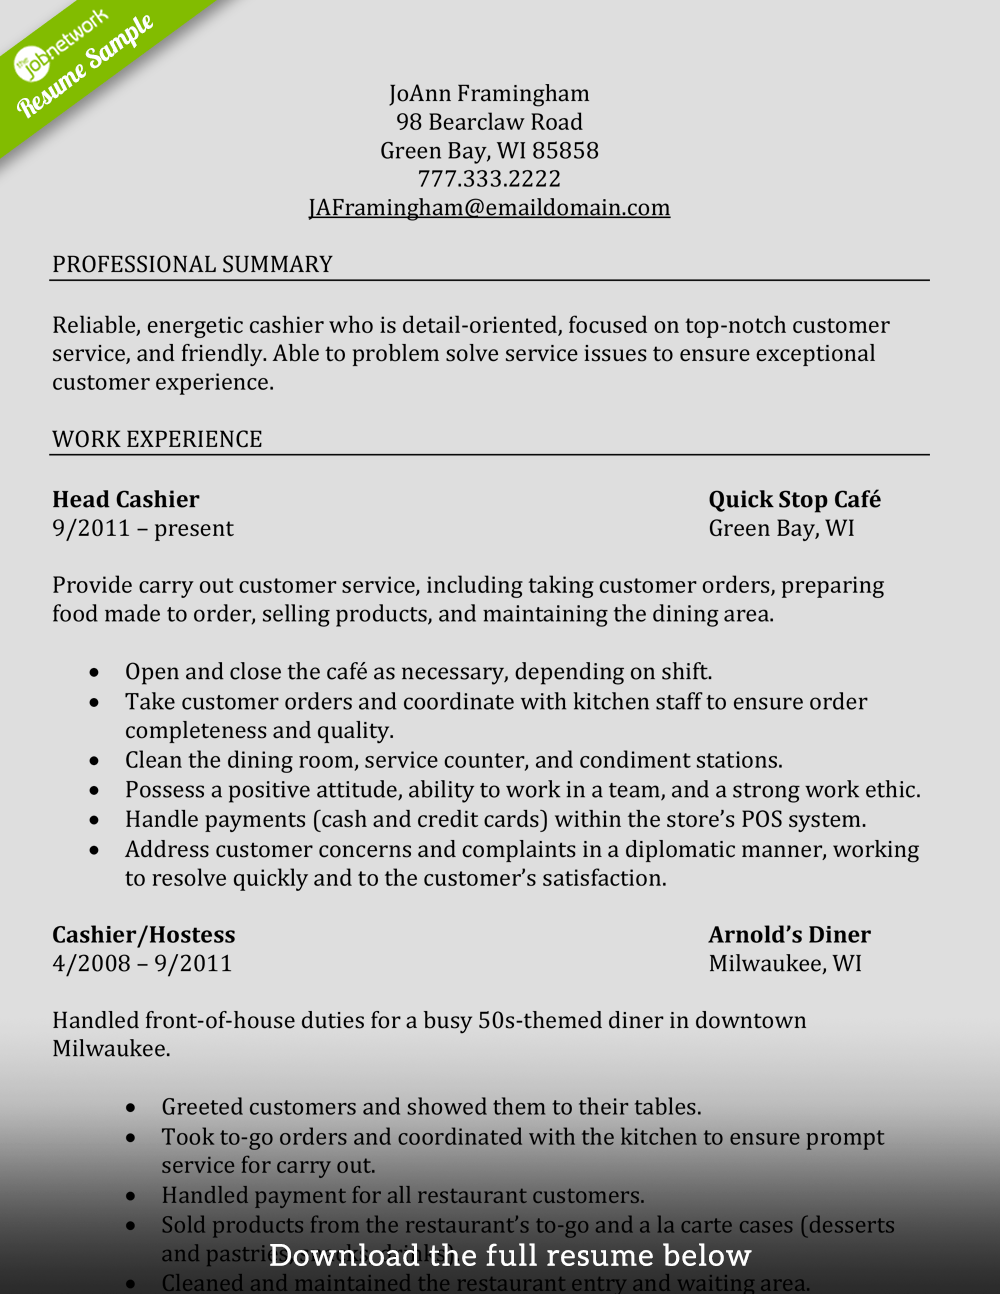 how to build a resume reddit professional resume cover letter sample how to build a resume reddit guide to resume writing examples o r reddit how to